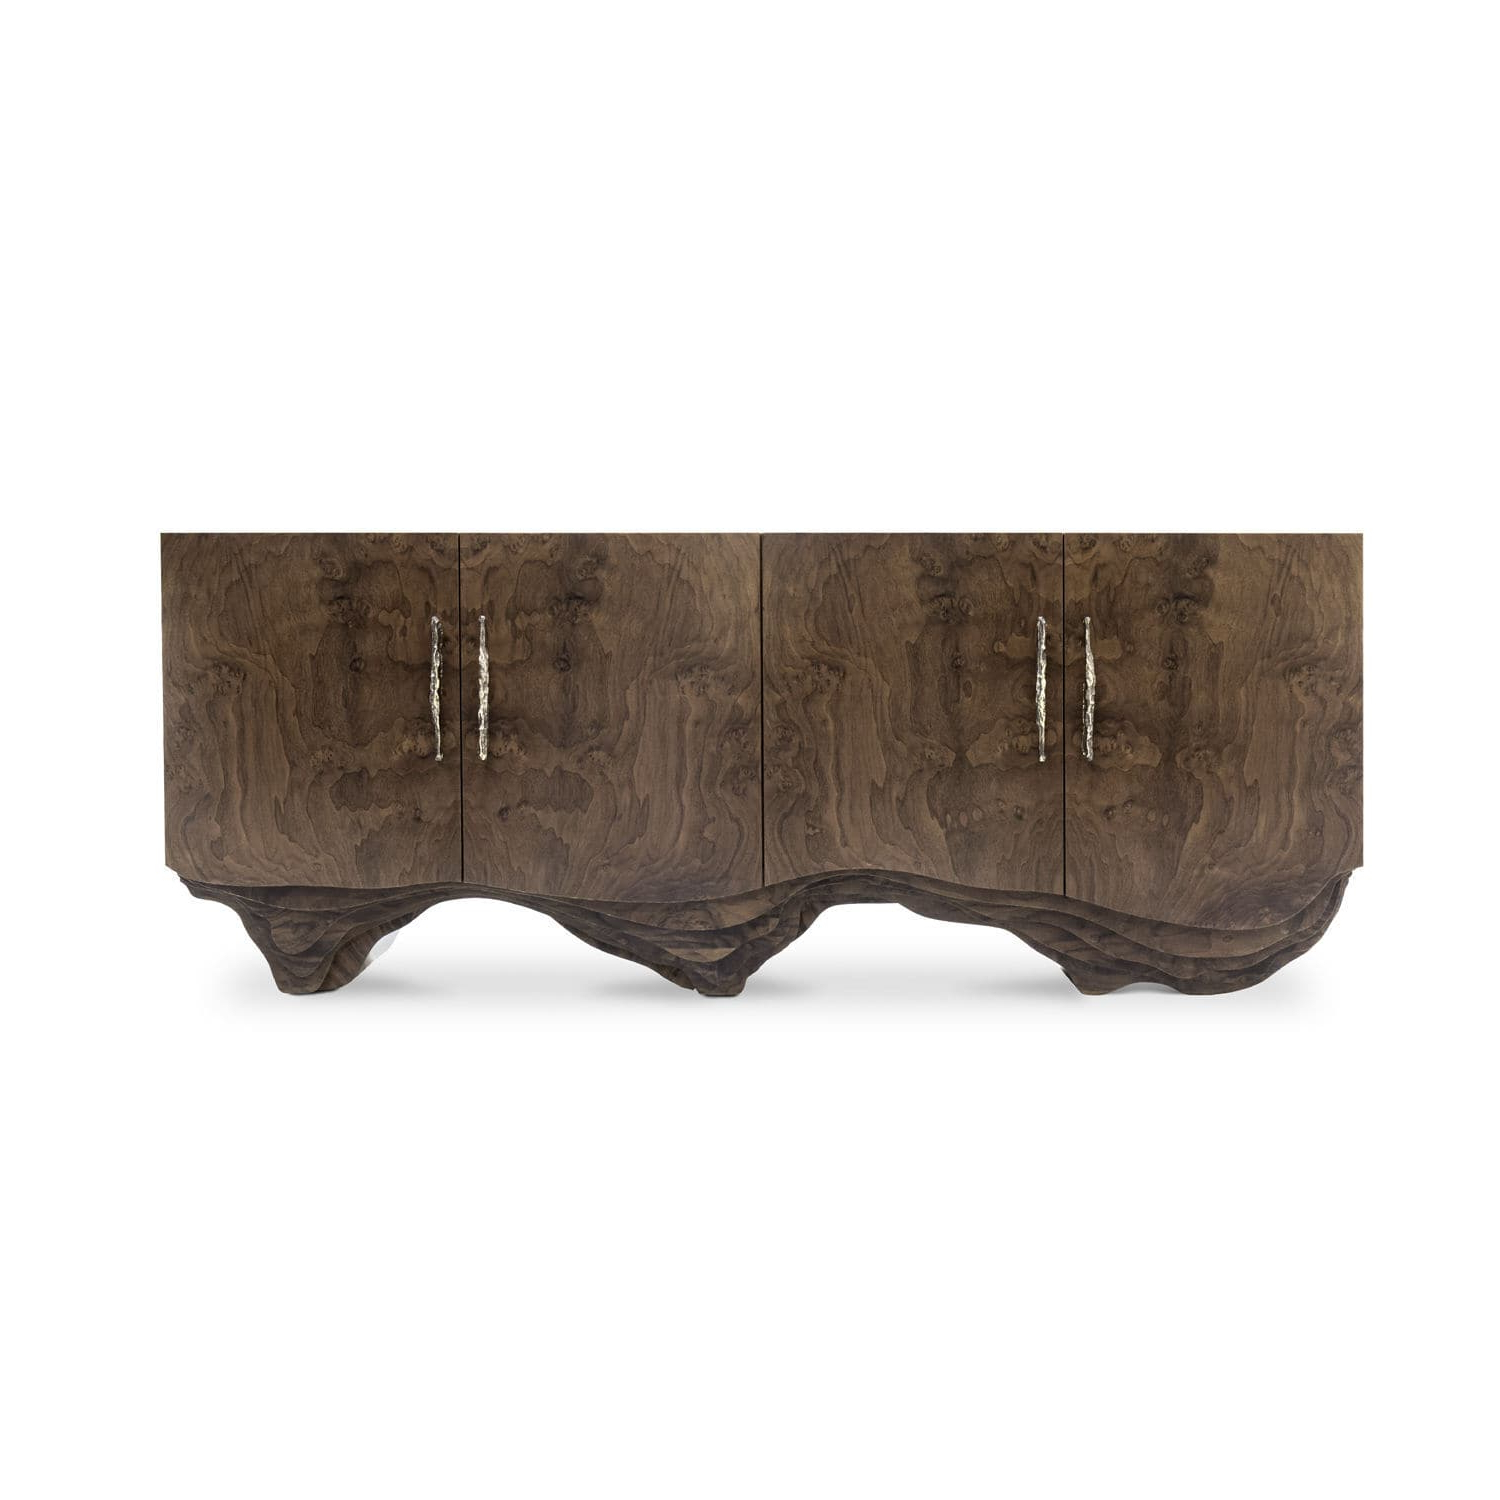 Aged Brass Sideboards Inside Most Up To Date Contemporary Sideboard / Walnut / Wood Veneer / Polished Brass (View 14 of 20)